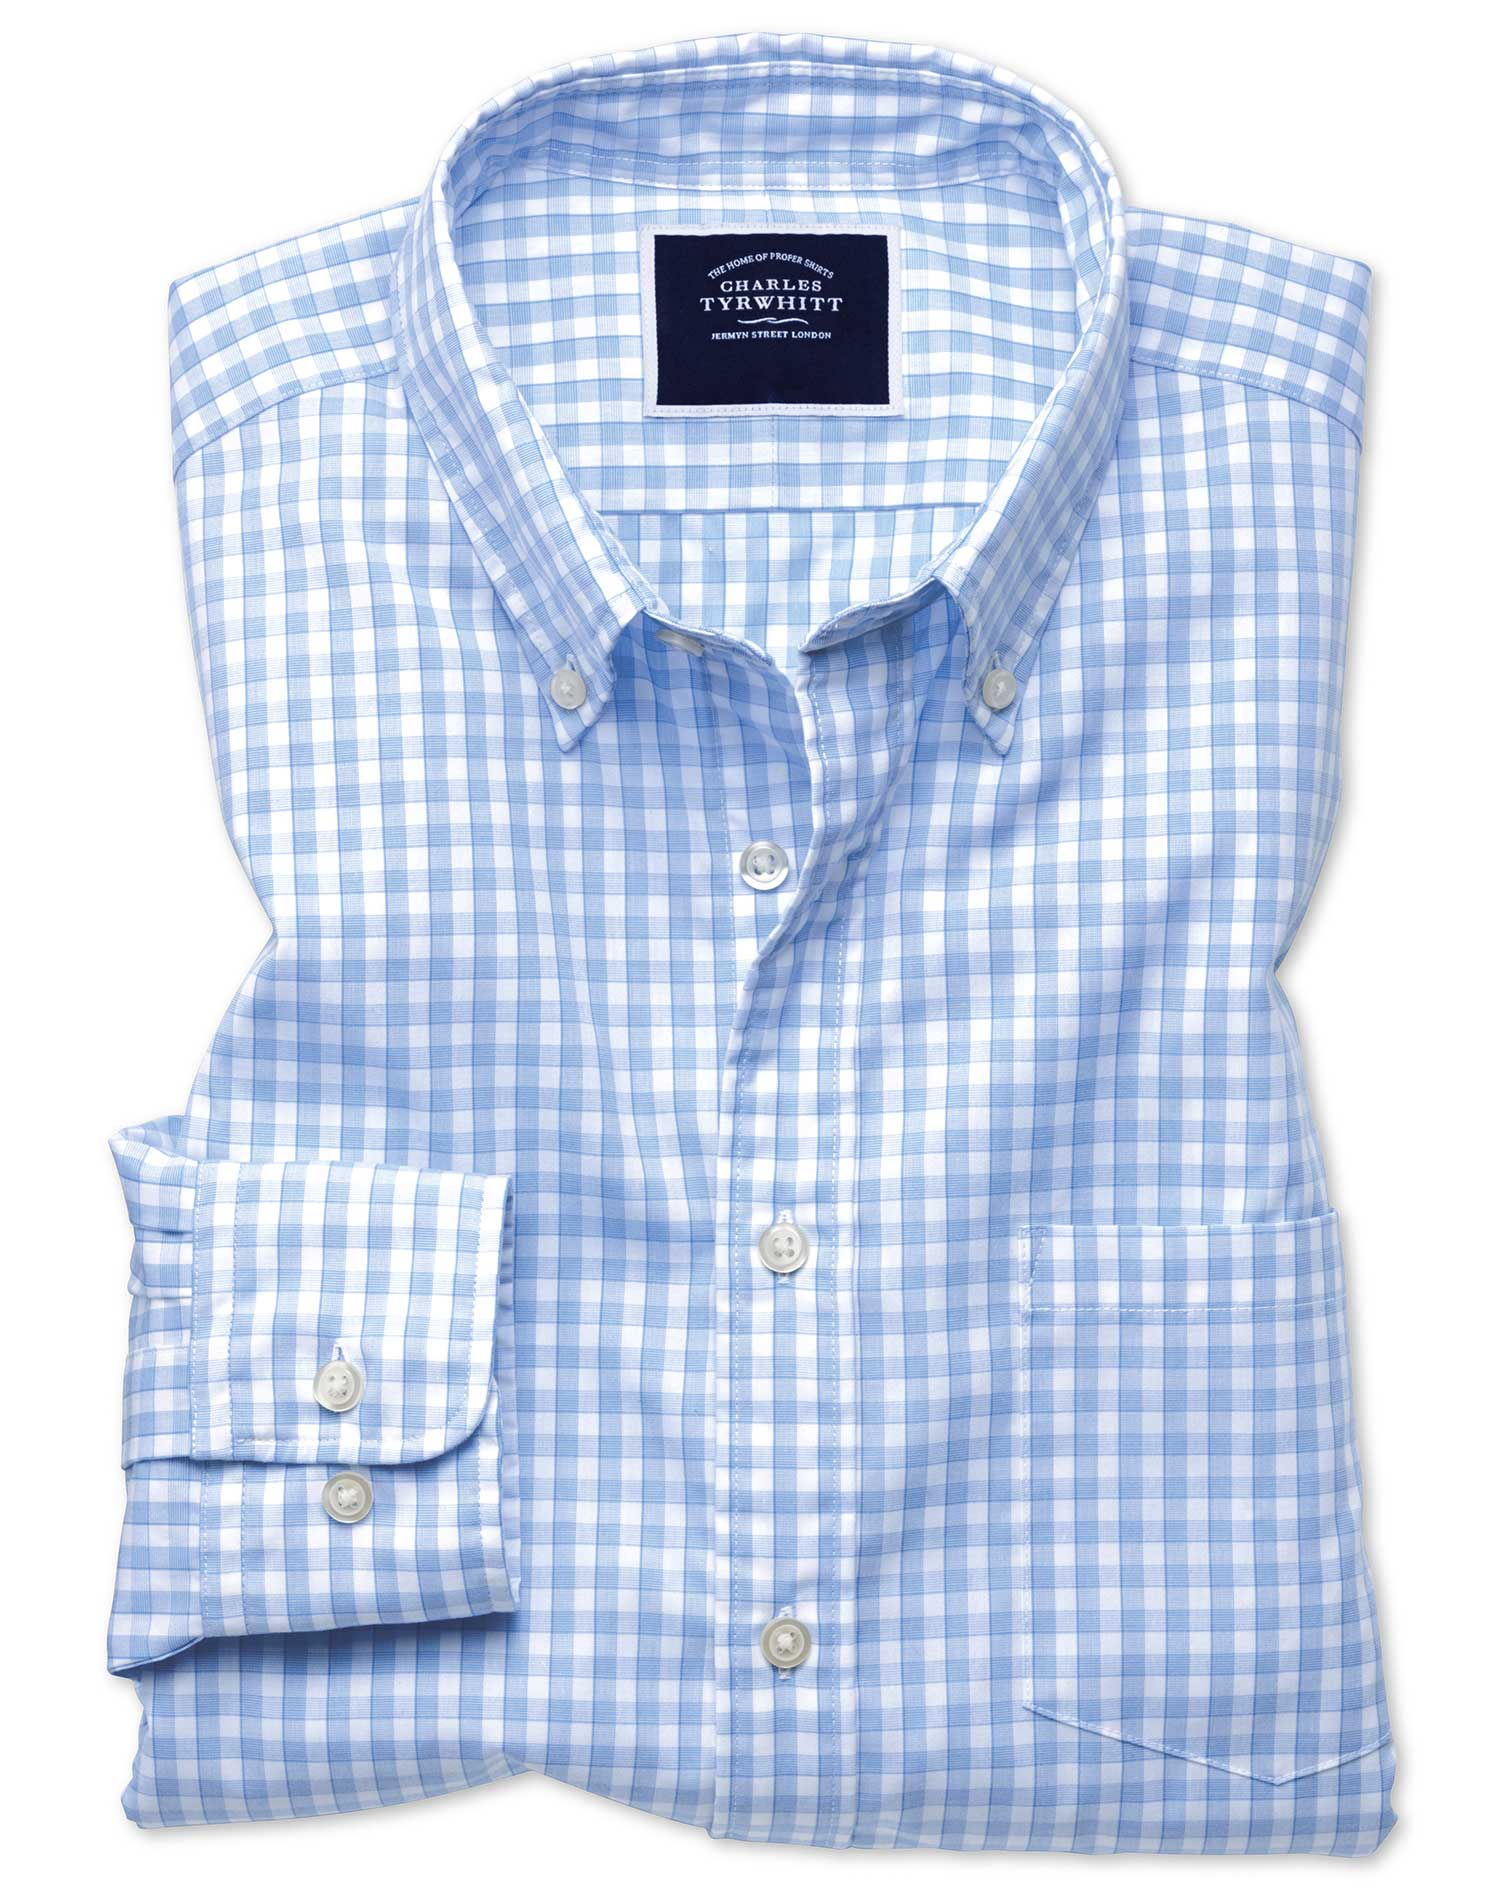 Cotton Classic Fit Sky Blue Gingham Soft Washed Non-Iron Tyrwhitt Cool Shirt